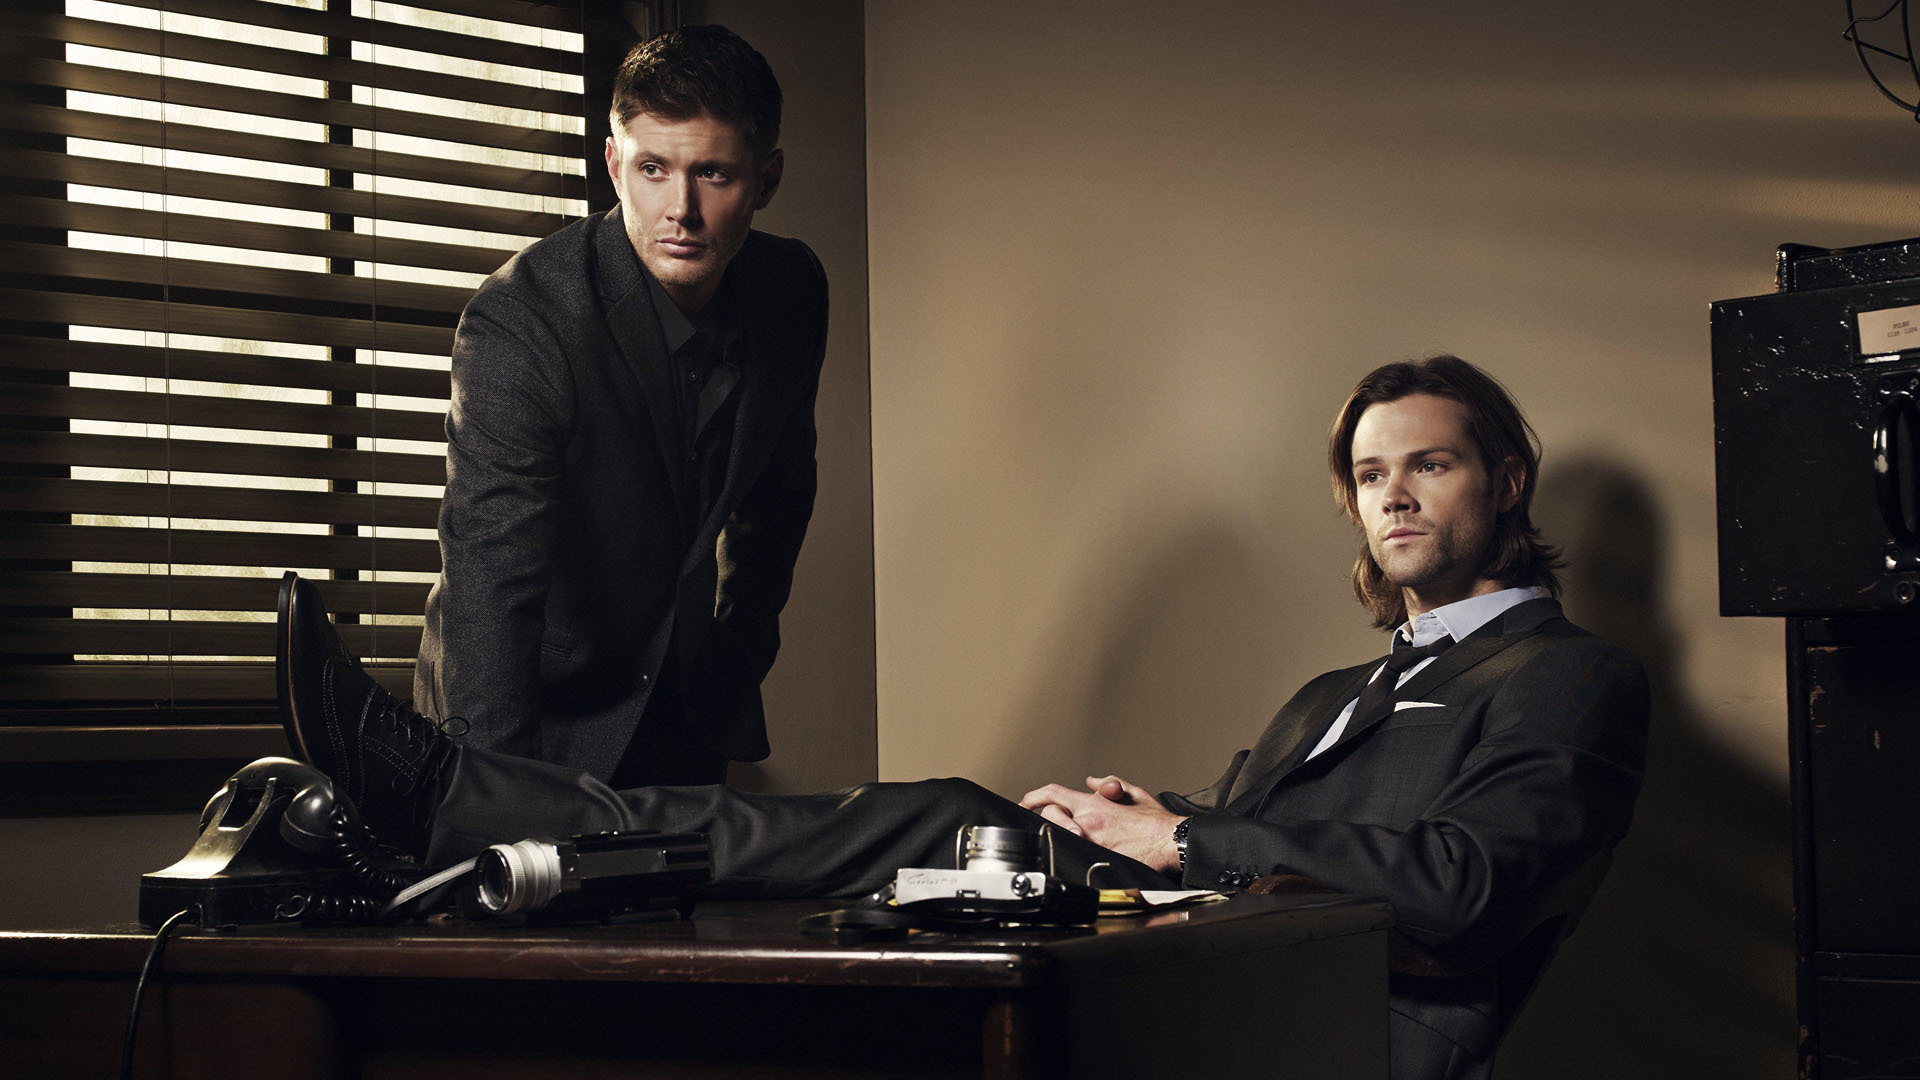 Supernatural Hd Wallpapers Pictures Images